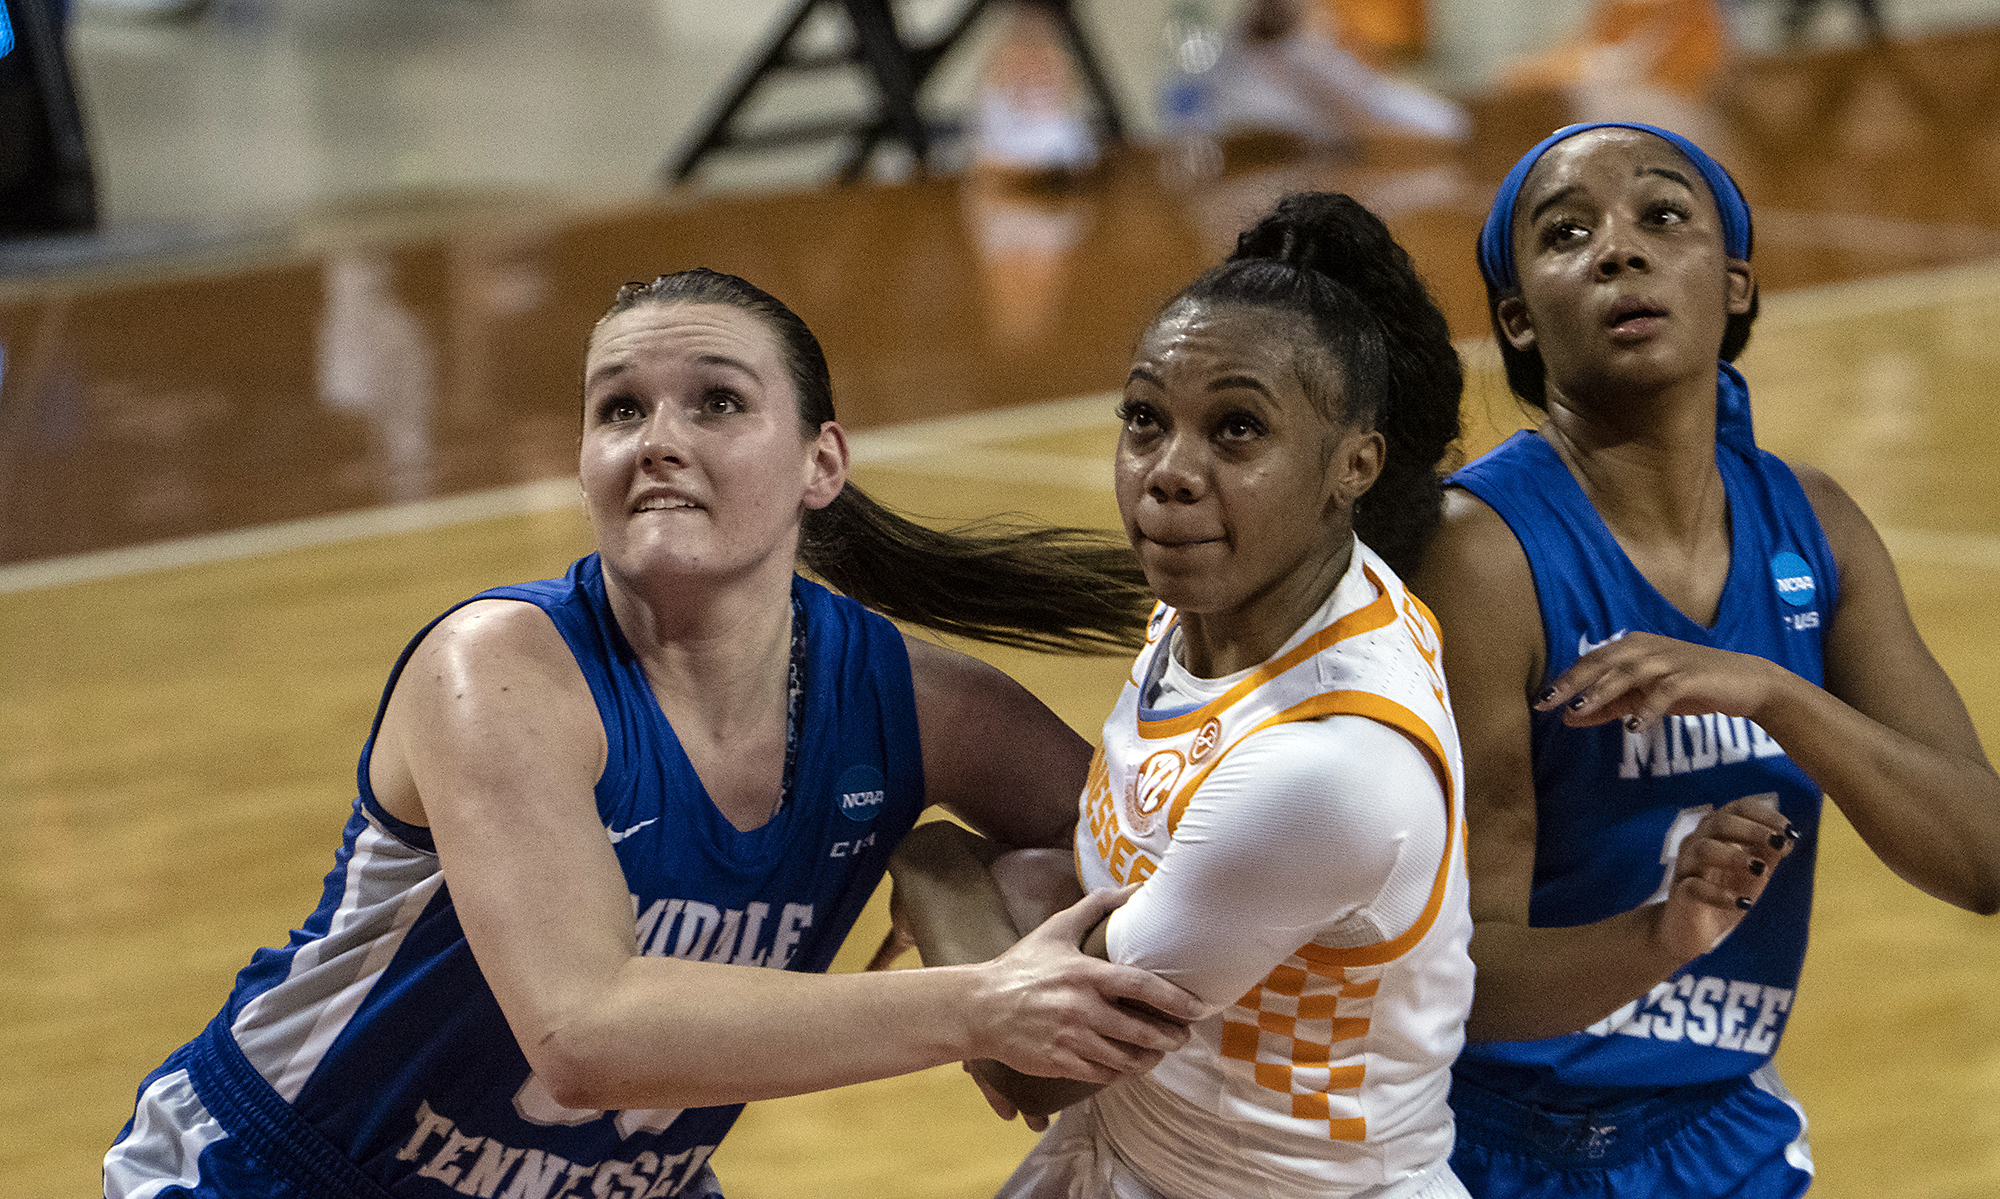 PHOTO GALLERY: Lady Vols 1st Rd win over Middle Tennessee